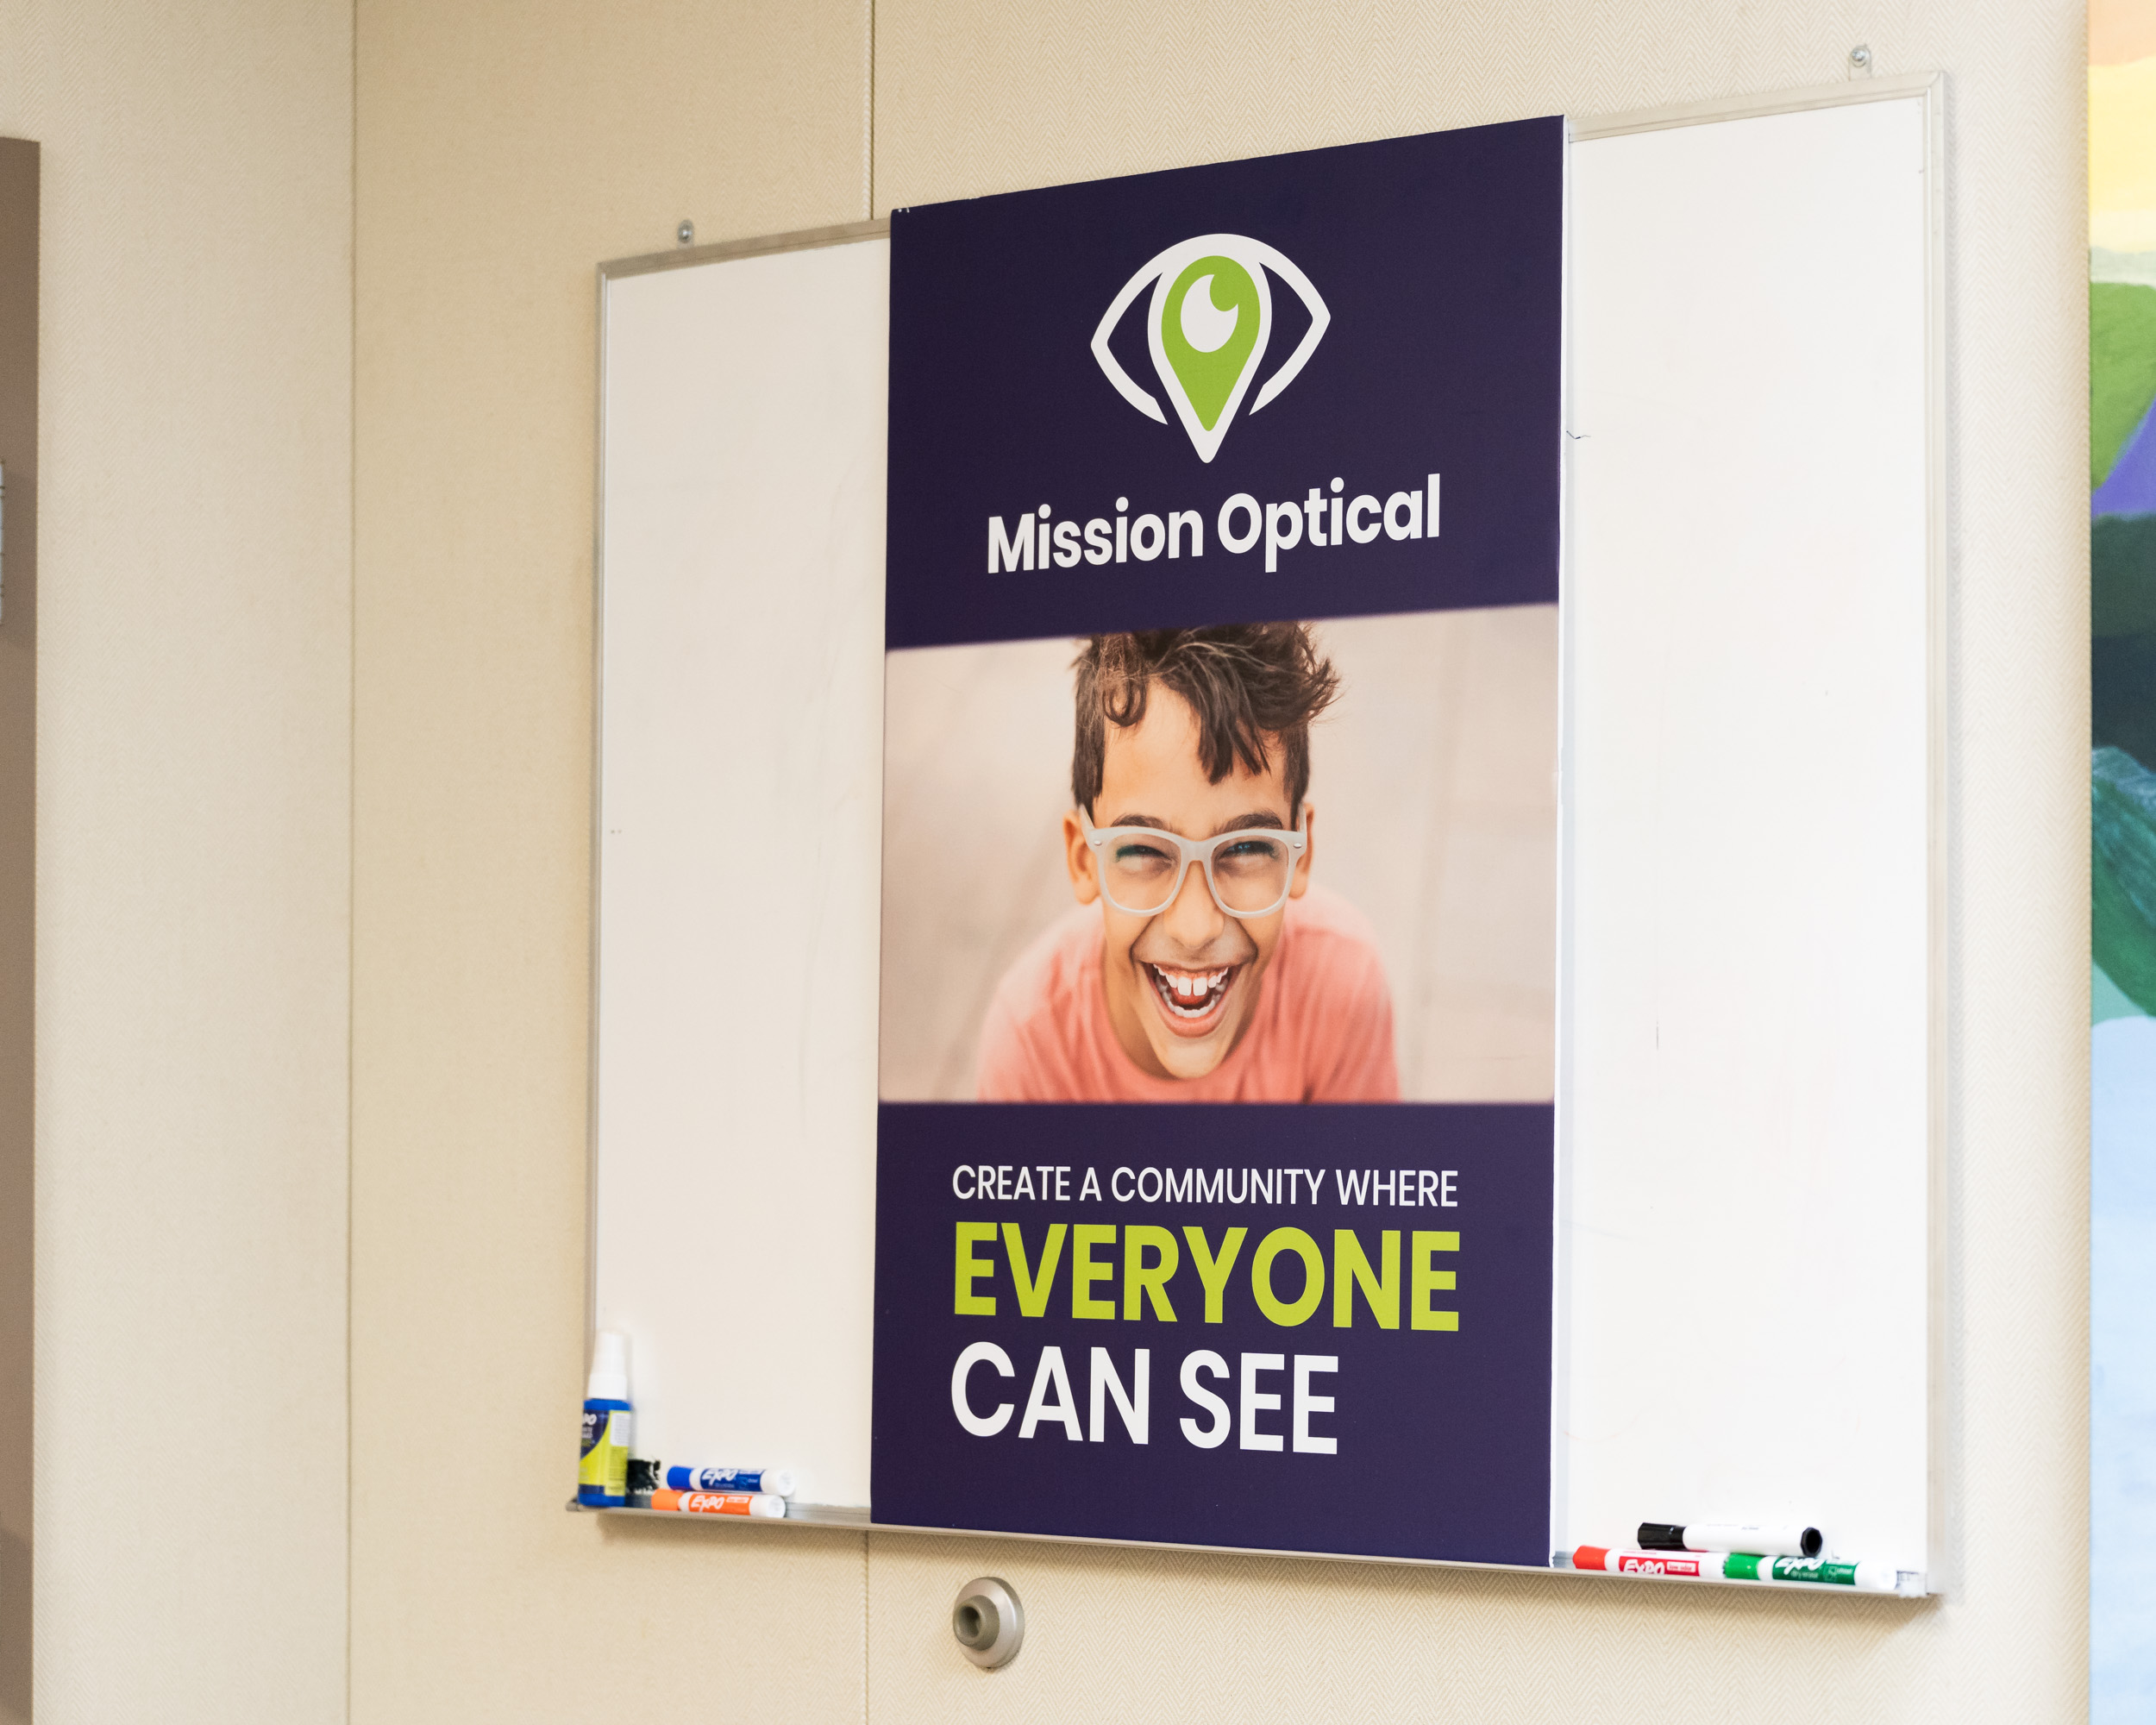 A 'Mission Optical' poster on a white board.